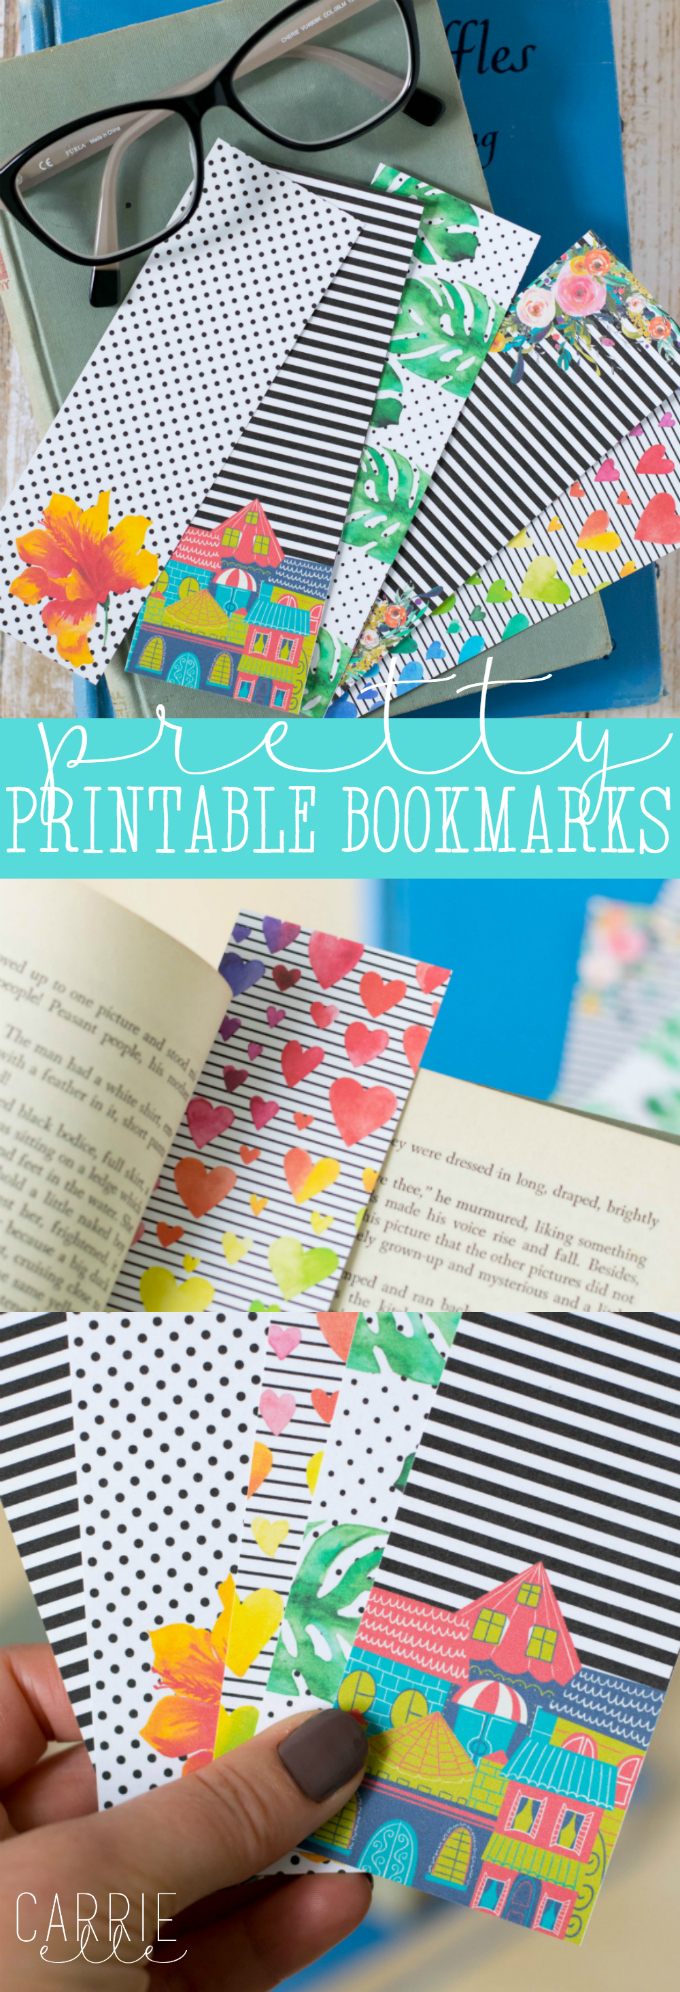 Pretty Printable Bookmarks